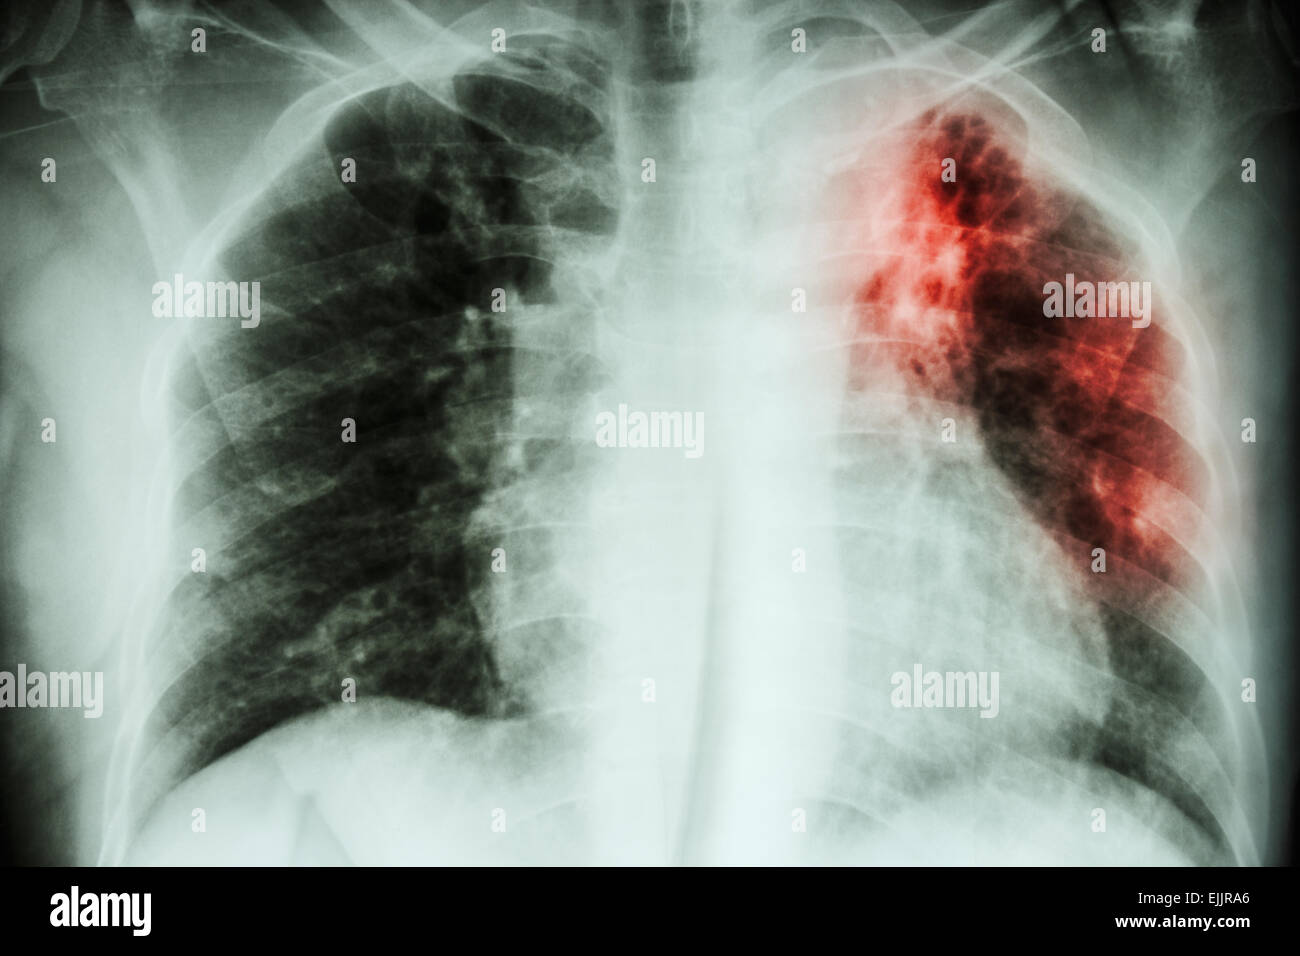 Pulmonary Tuberculosis   Chest X-ray : interstitial